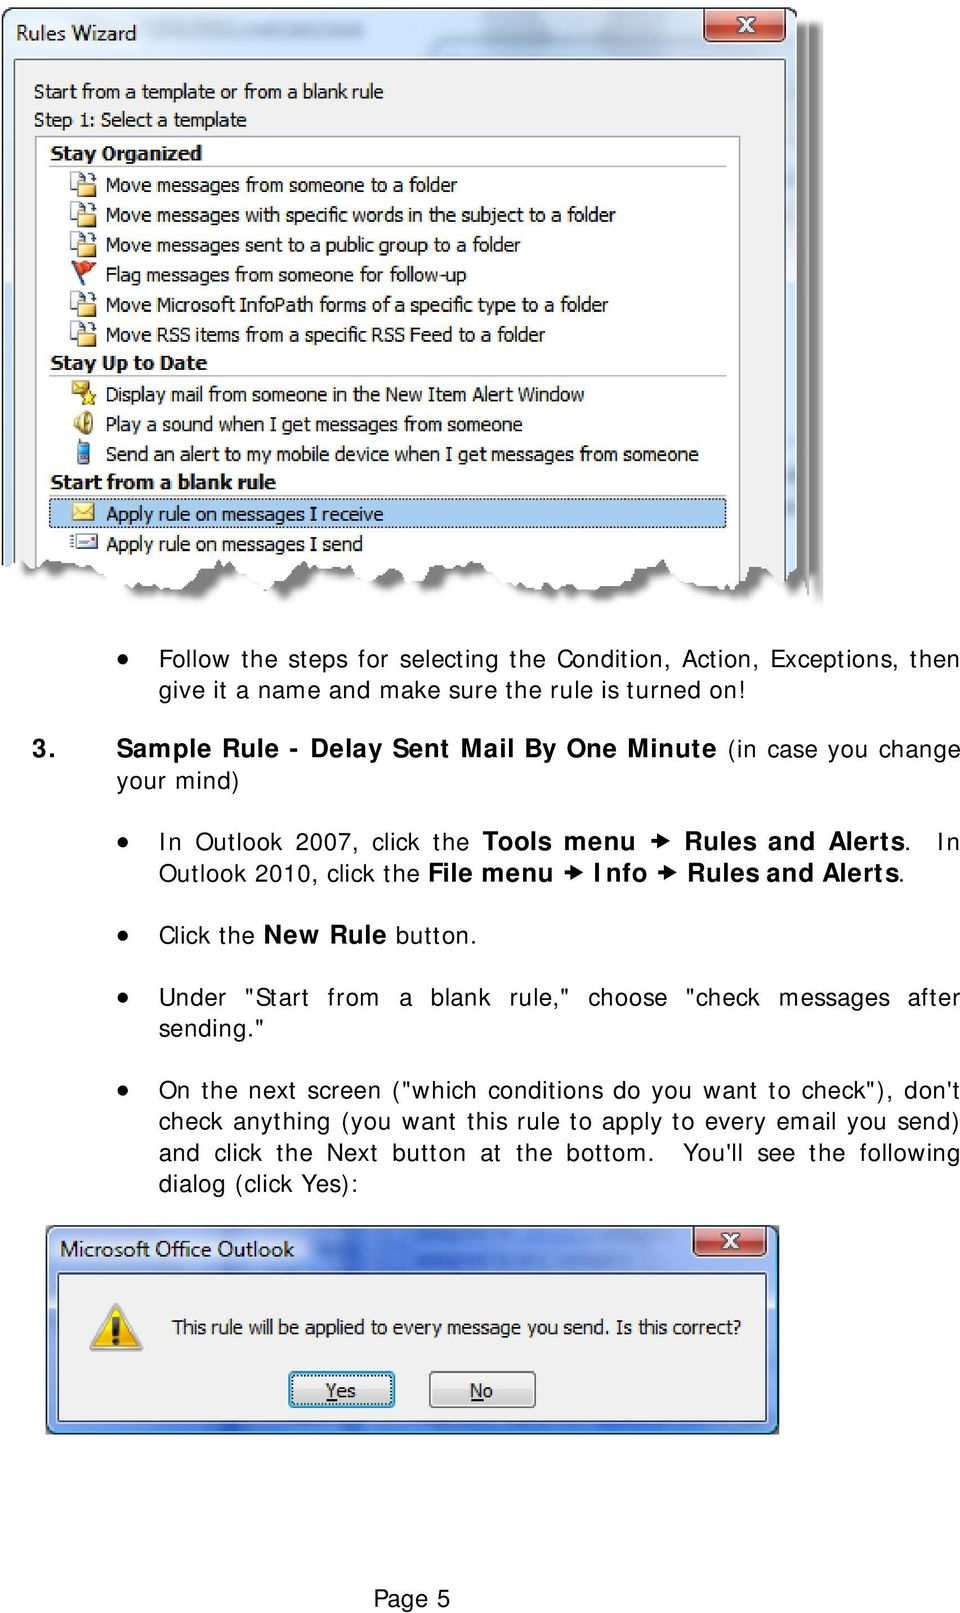 "In Outlook 2010, click the File menu Info Rules and Alerts. Click the New Rule button. Under ""Start from a blank rule,"" choose ""check messages after sending."